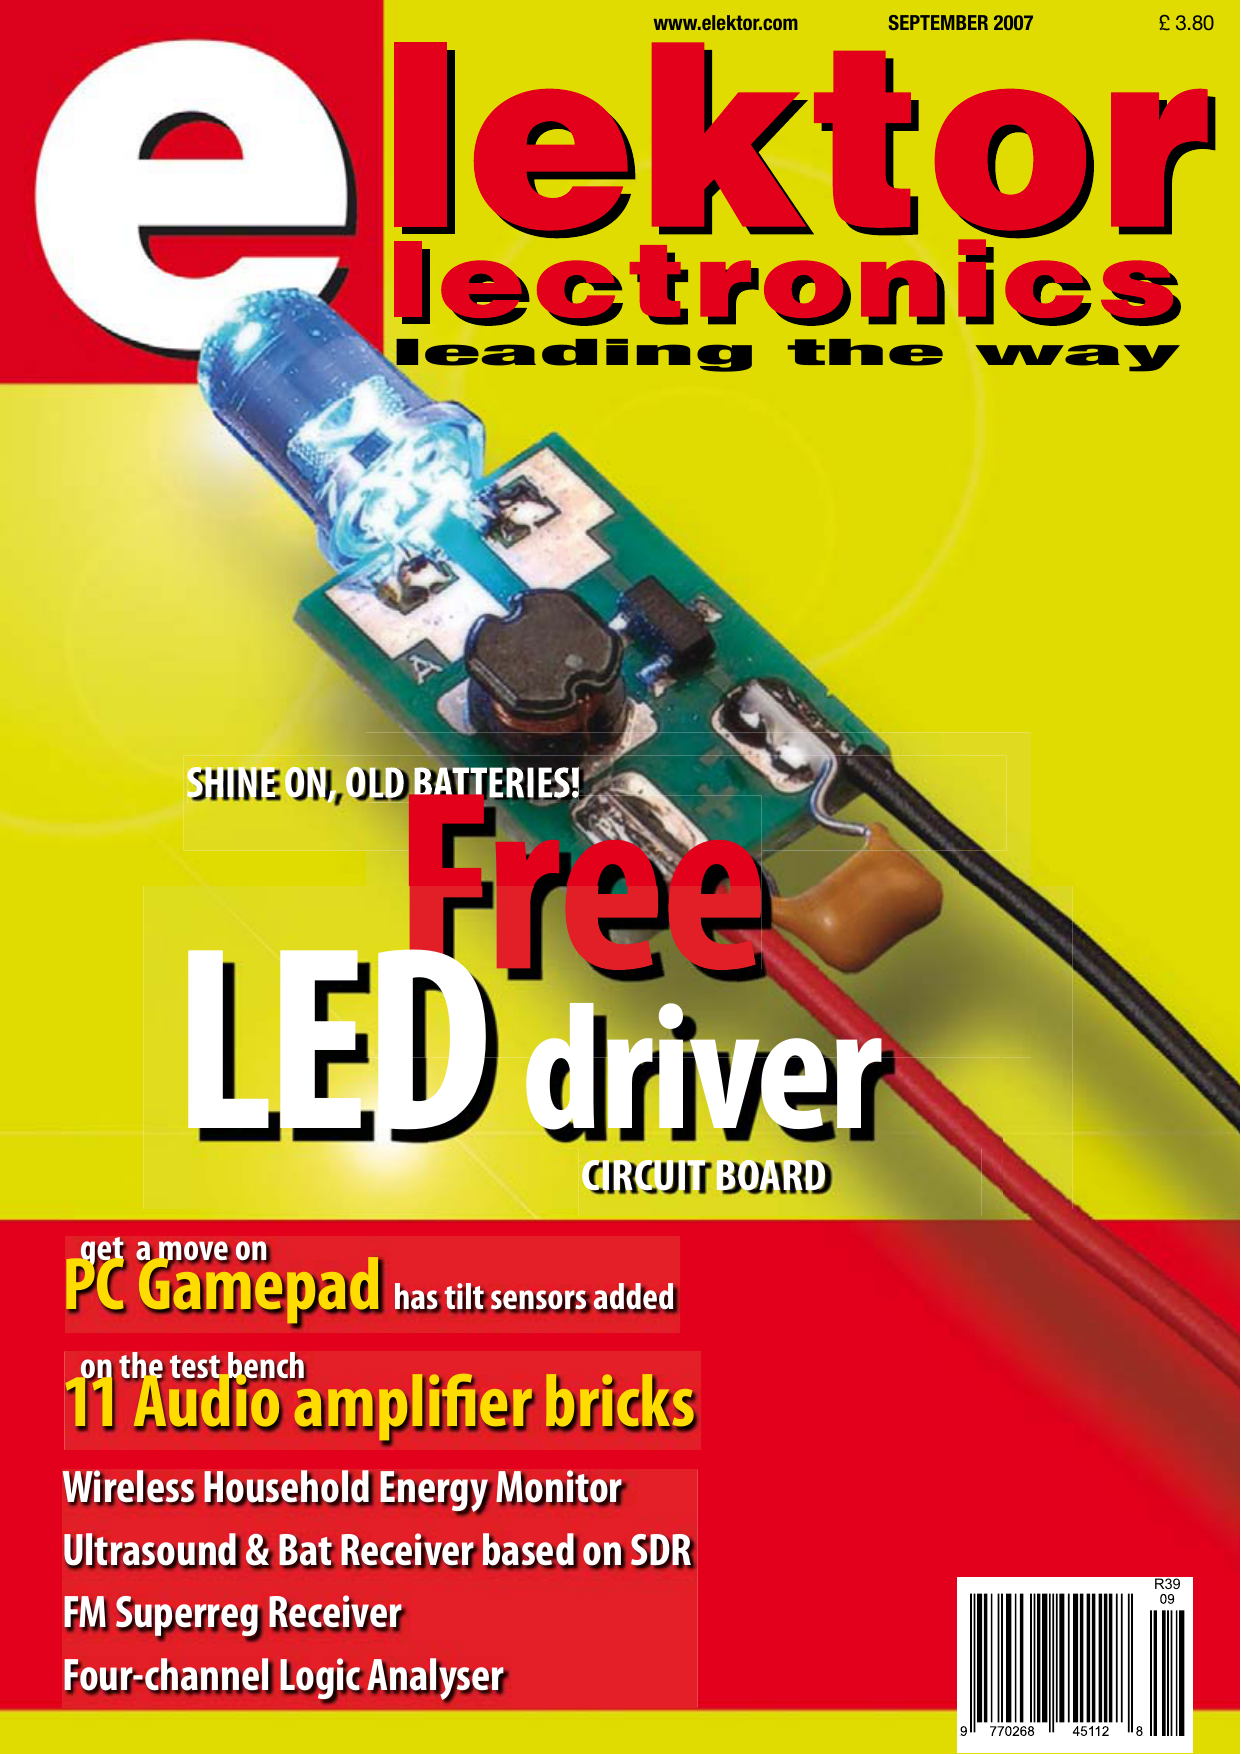 Elector Electronics September 2007 Elektor Publishing In Flickering Circuits And Assorted Lens Sizes From 3mm 10mm 309 2006 Publishingpdf